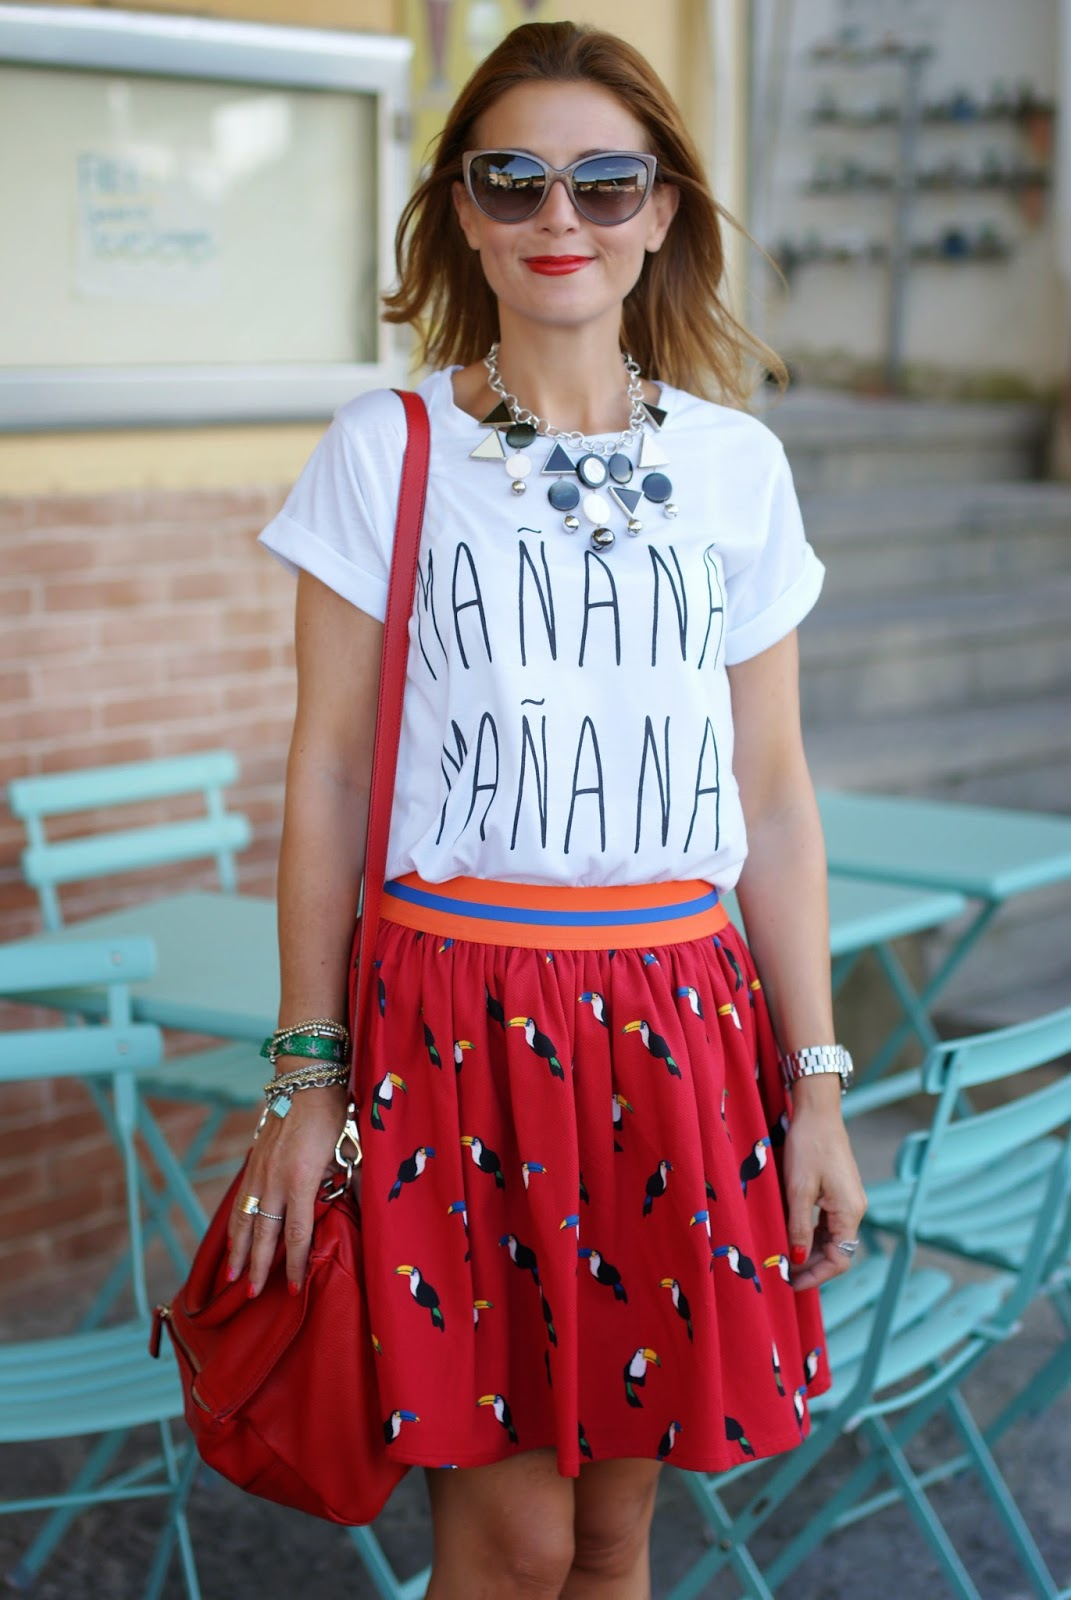 manana manana meaning, manana t-shirt, Givenchy Pandora in red, Fashion and Cookies, fashion blogger